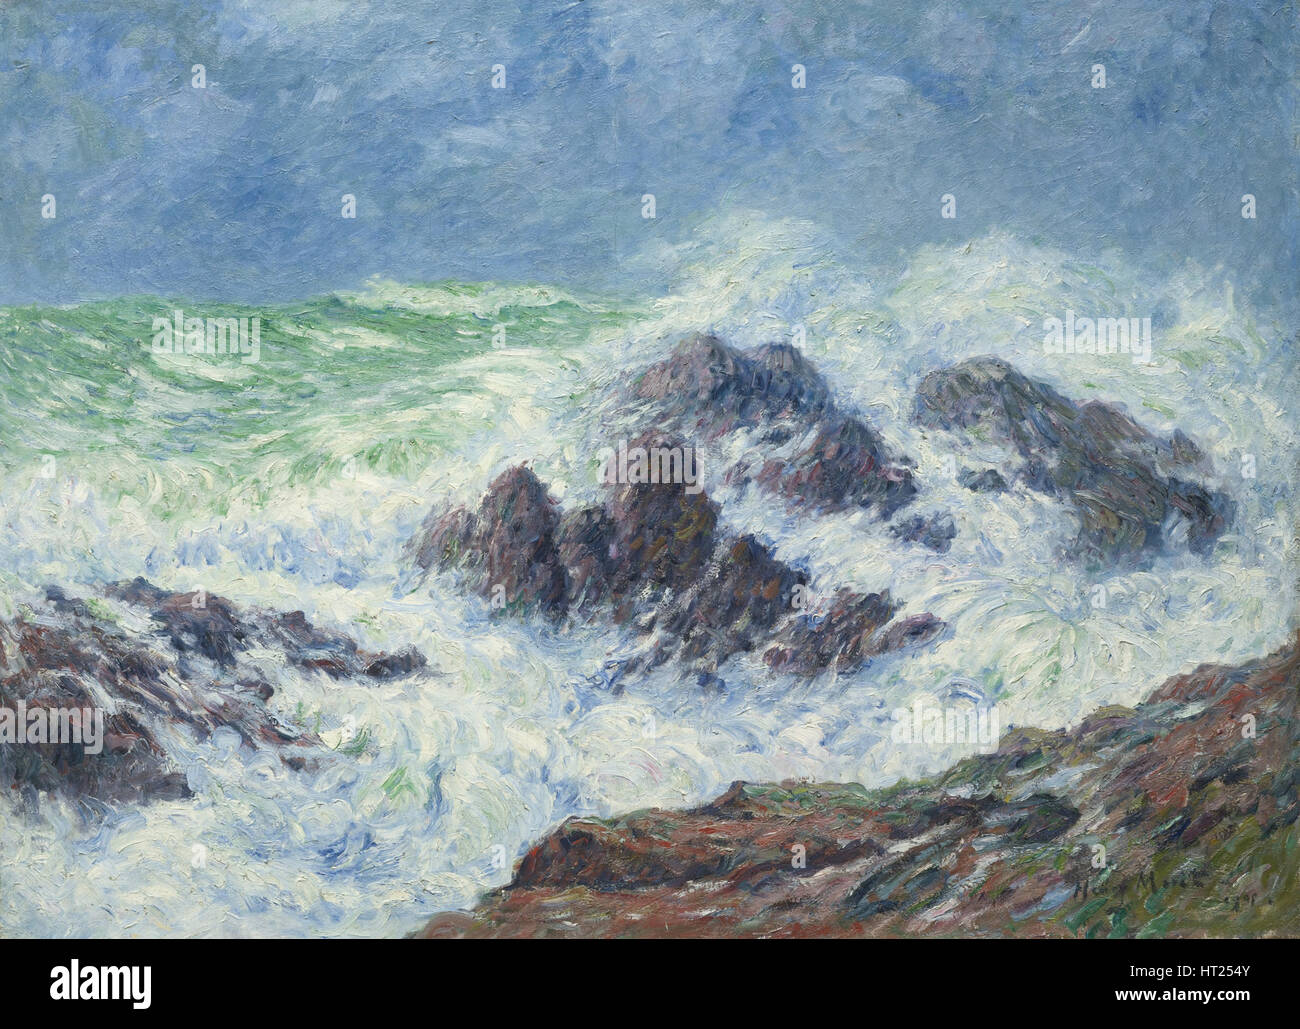 Heavy Weather a Saint Grenoble, Pointe de Penmarch, 1905. Artista: Moret, Henry (1856-1913) Immagini Stock